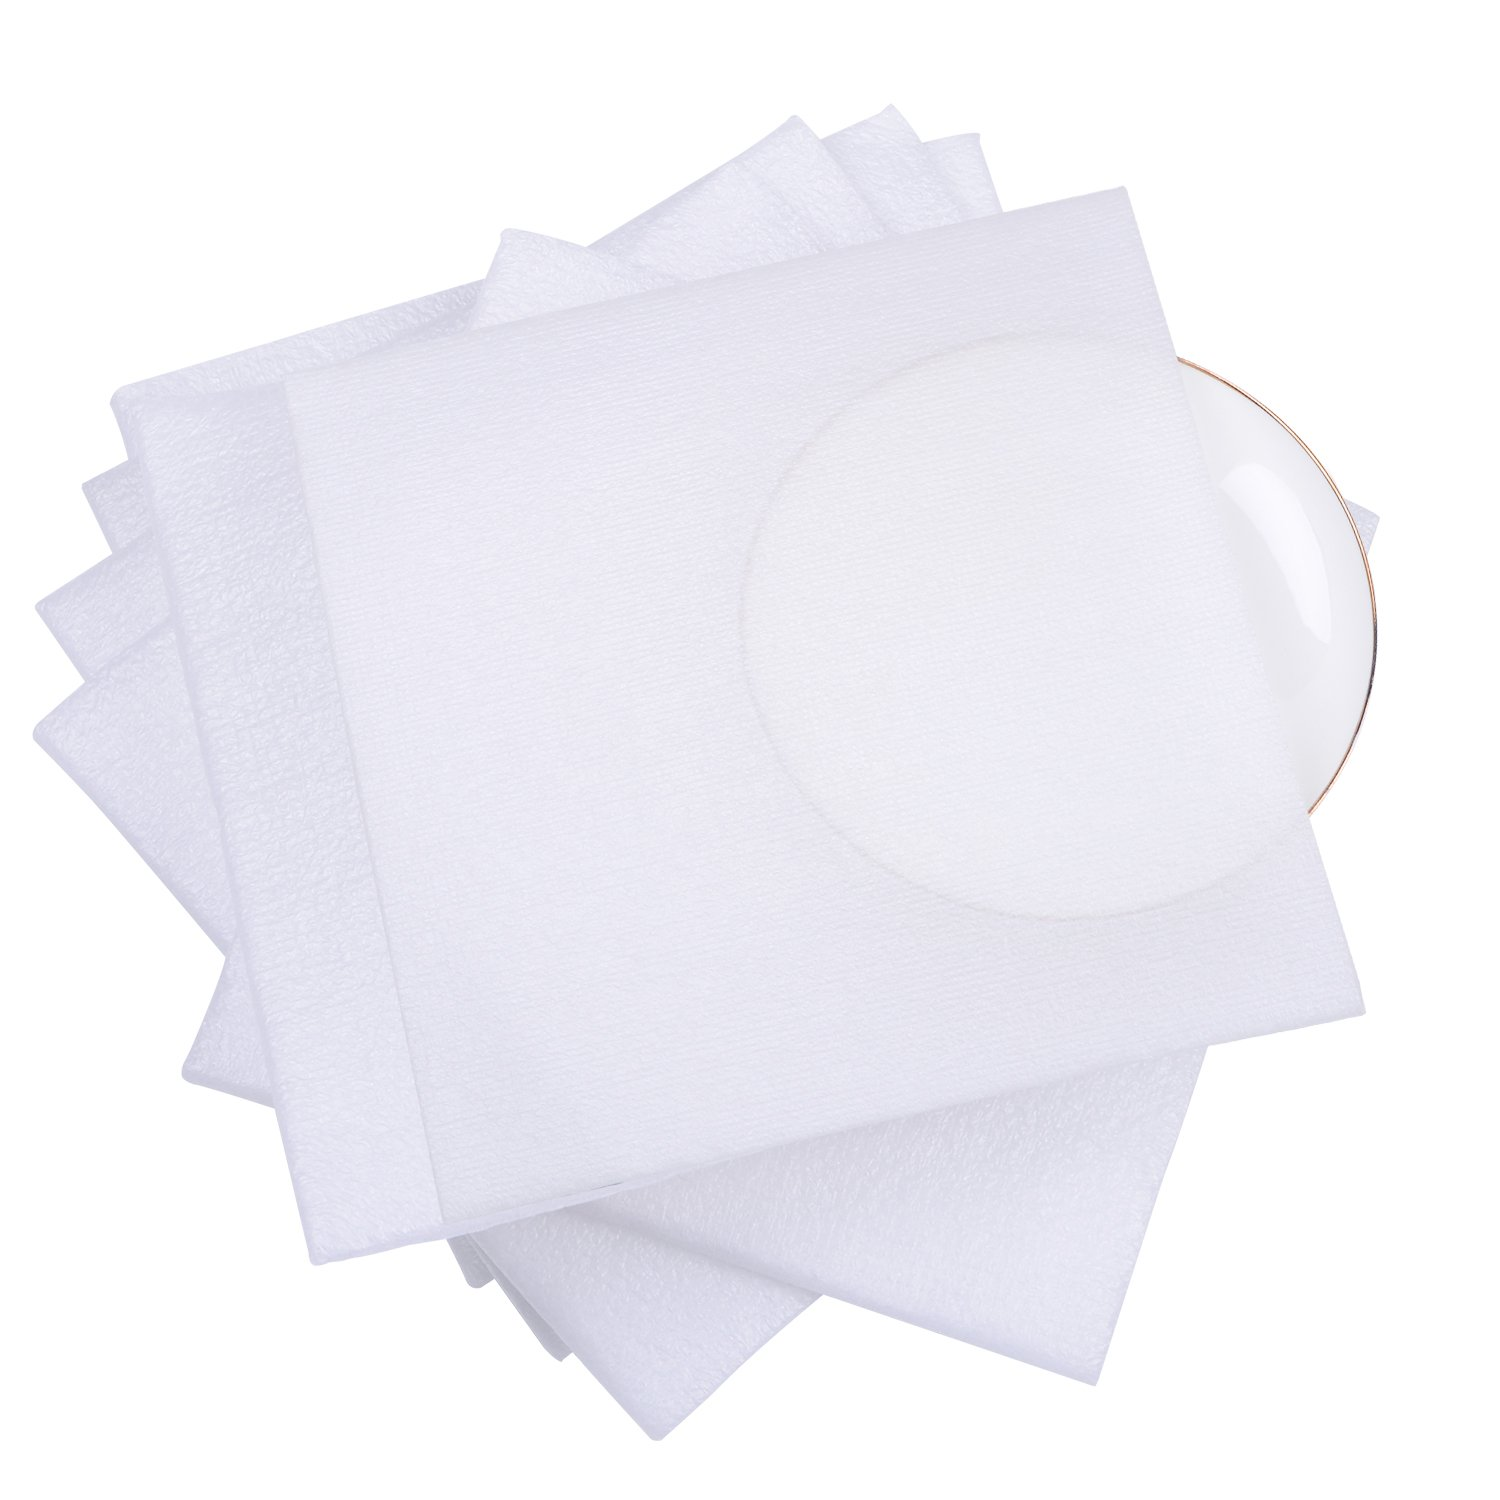 """1/4"""" Super Thick Foam Wrap Cup Pouches 7 1/2"""" x 7 1/2"""" (30 Count), Cushion Pouches to Protect Dishes, Glasses, Porcelain & Fragile Items, Packing Supplies for Moving"""